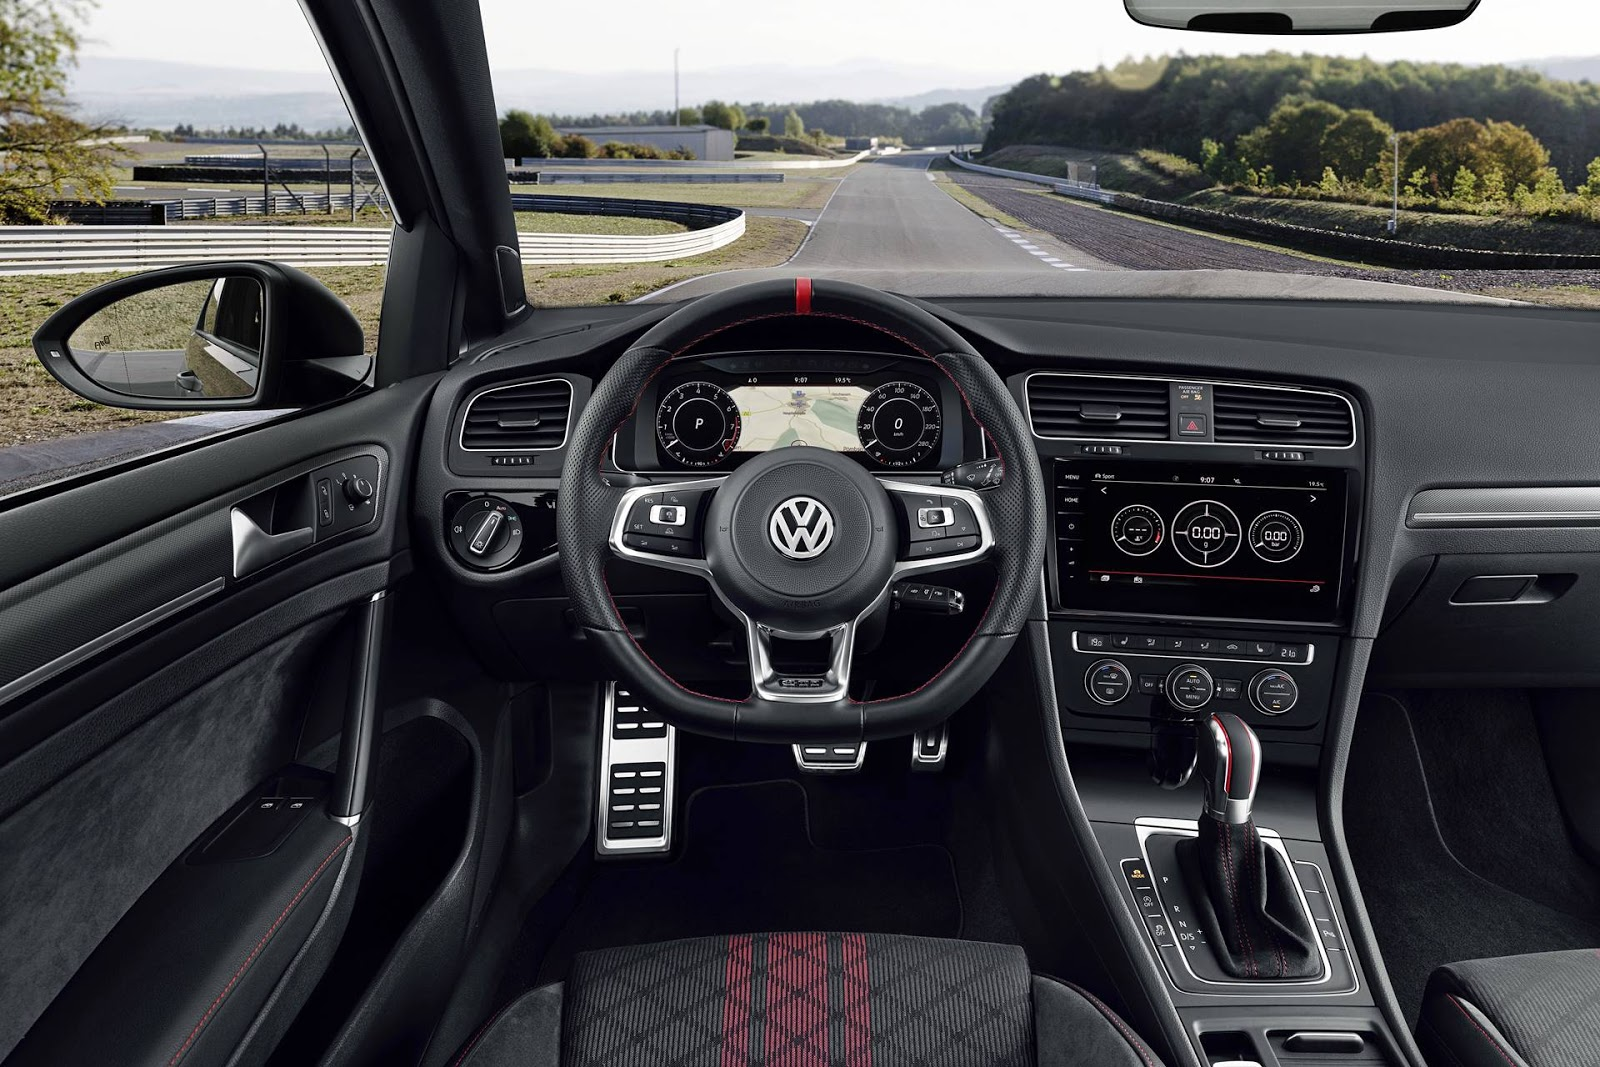 Vw Golf Gti 2019 Tcr Com 290 Cv O Canto Do Cisne Do Mk7 Car Blog Br